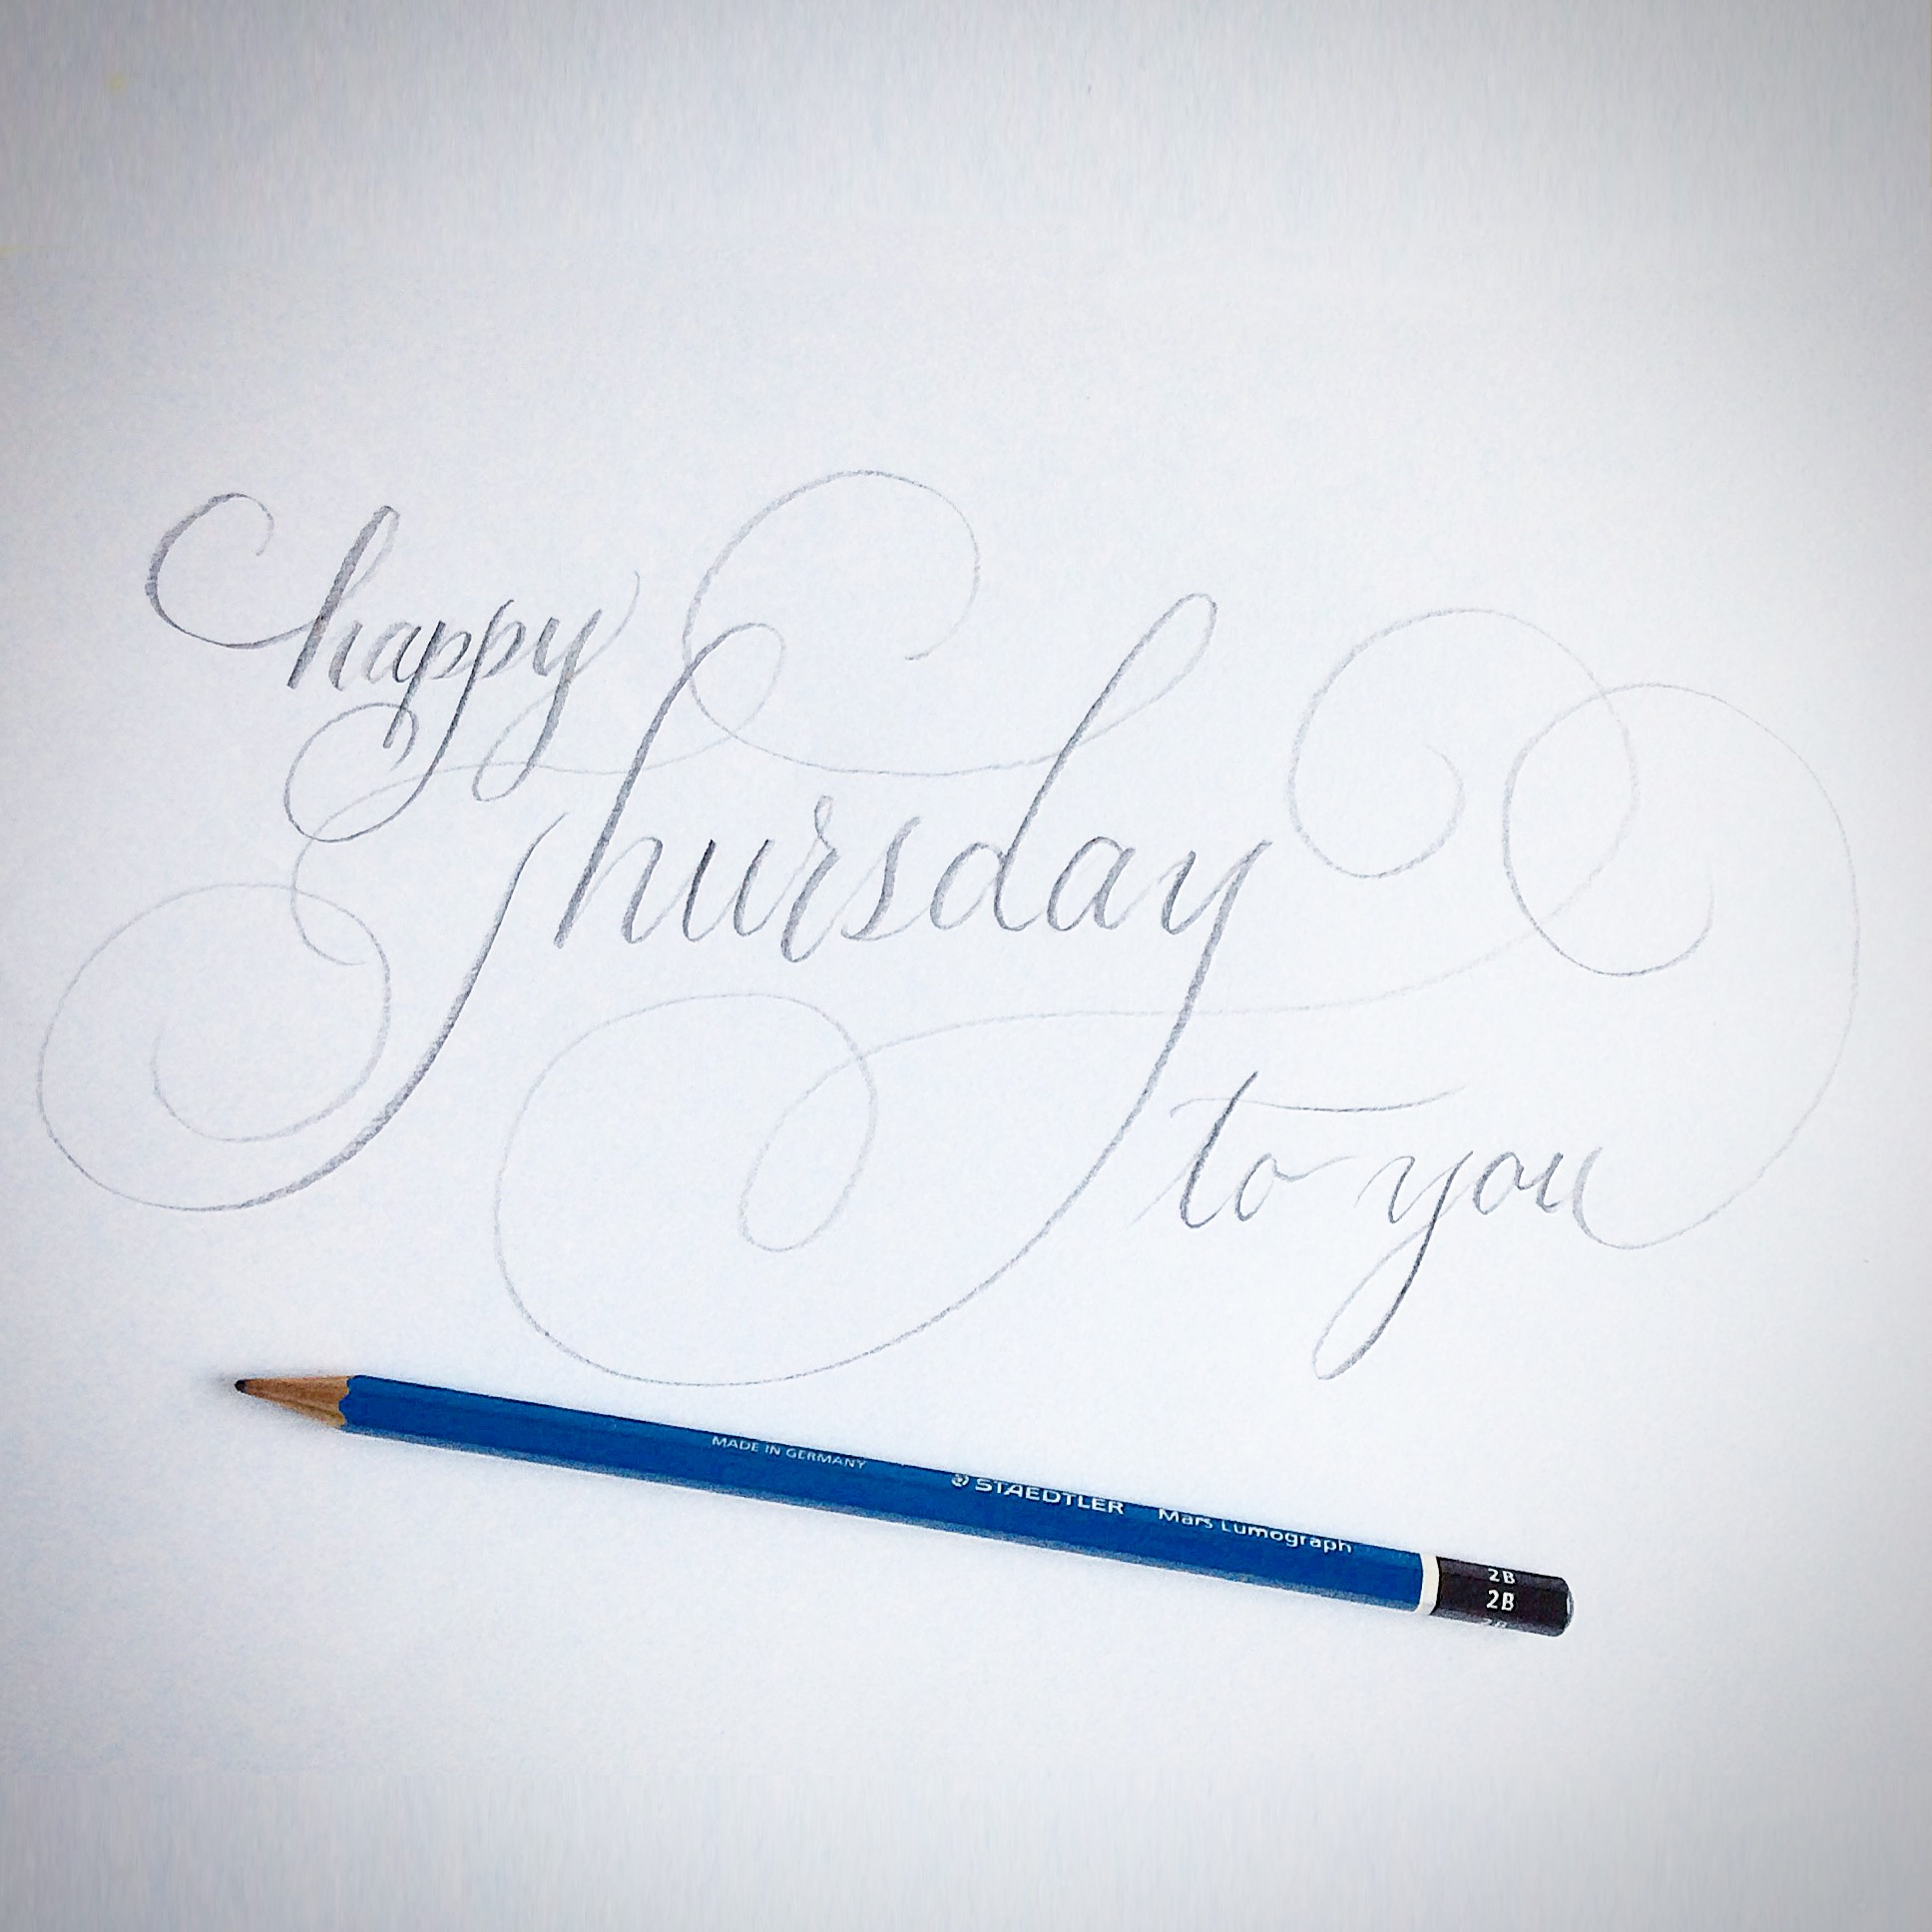 happy Thursday to you